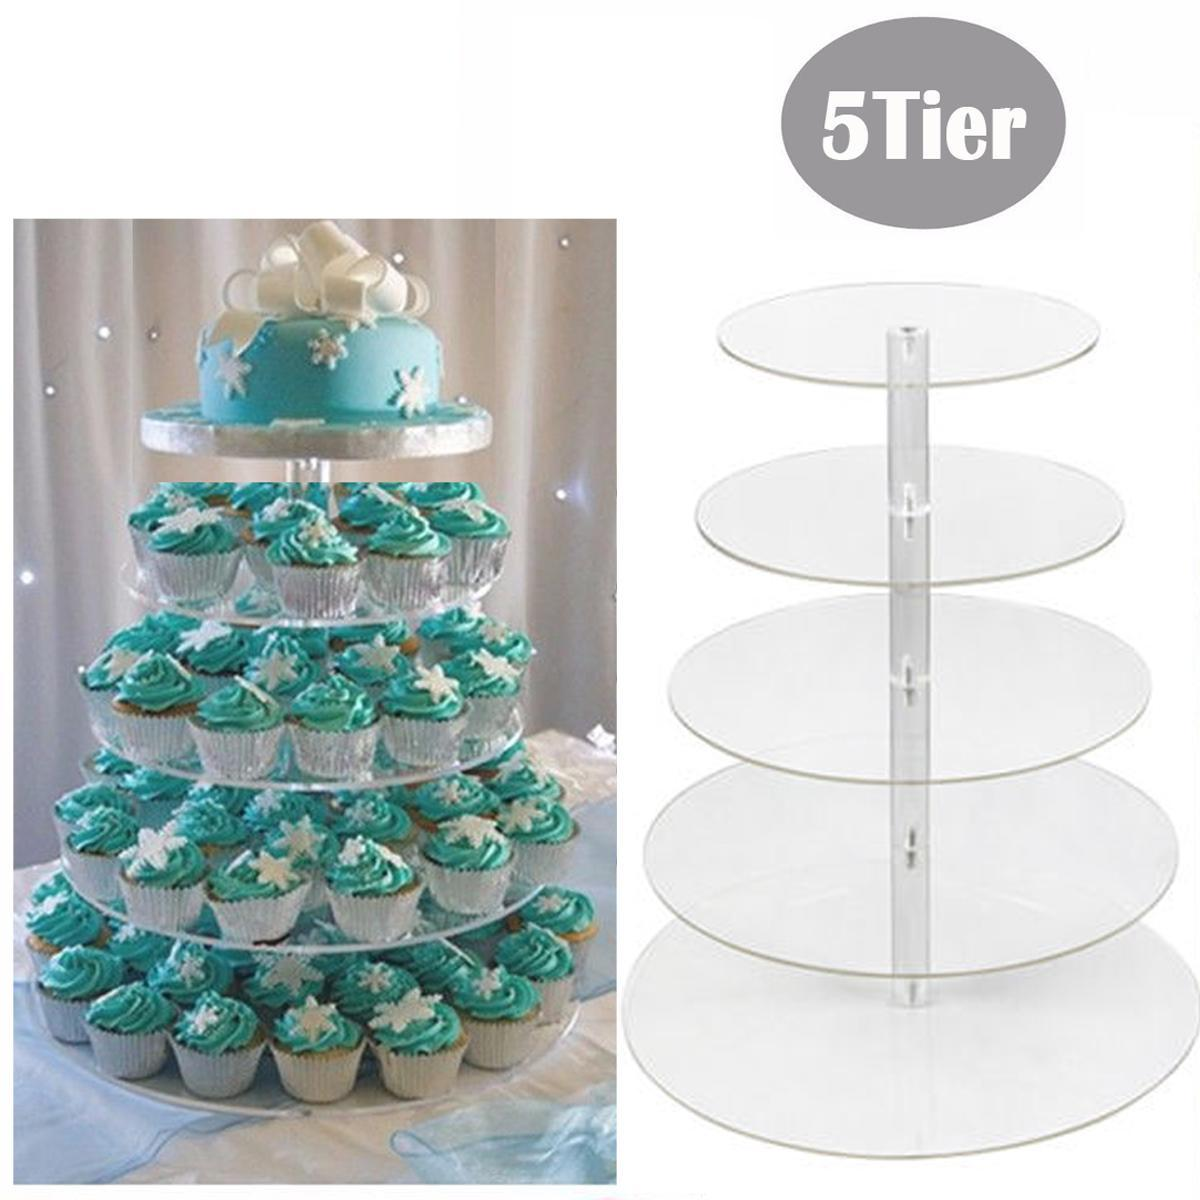 BETT Round Clear Acrylic Cupcake Stand Wedding Party Display Cake ...